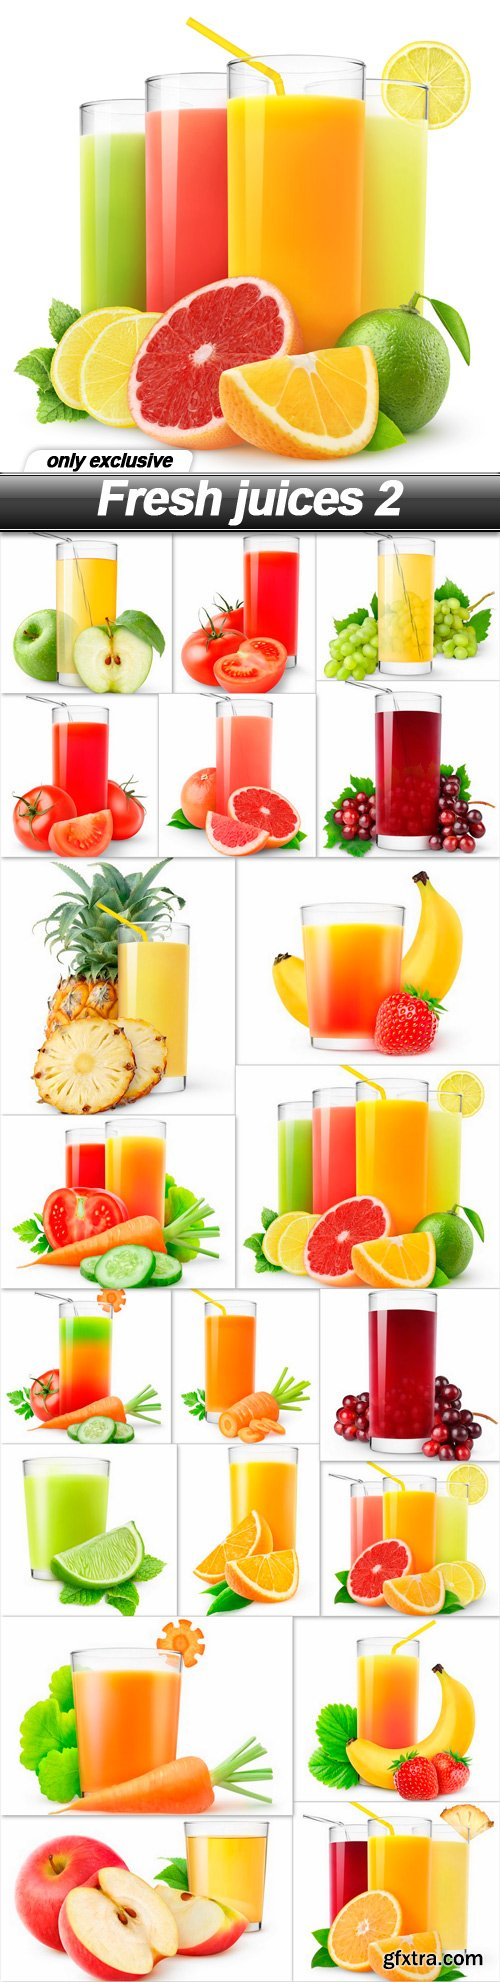 Fresh juices 2 - 20 UHQ JPEG